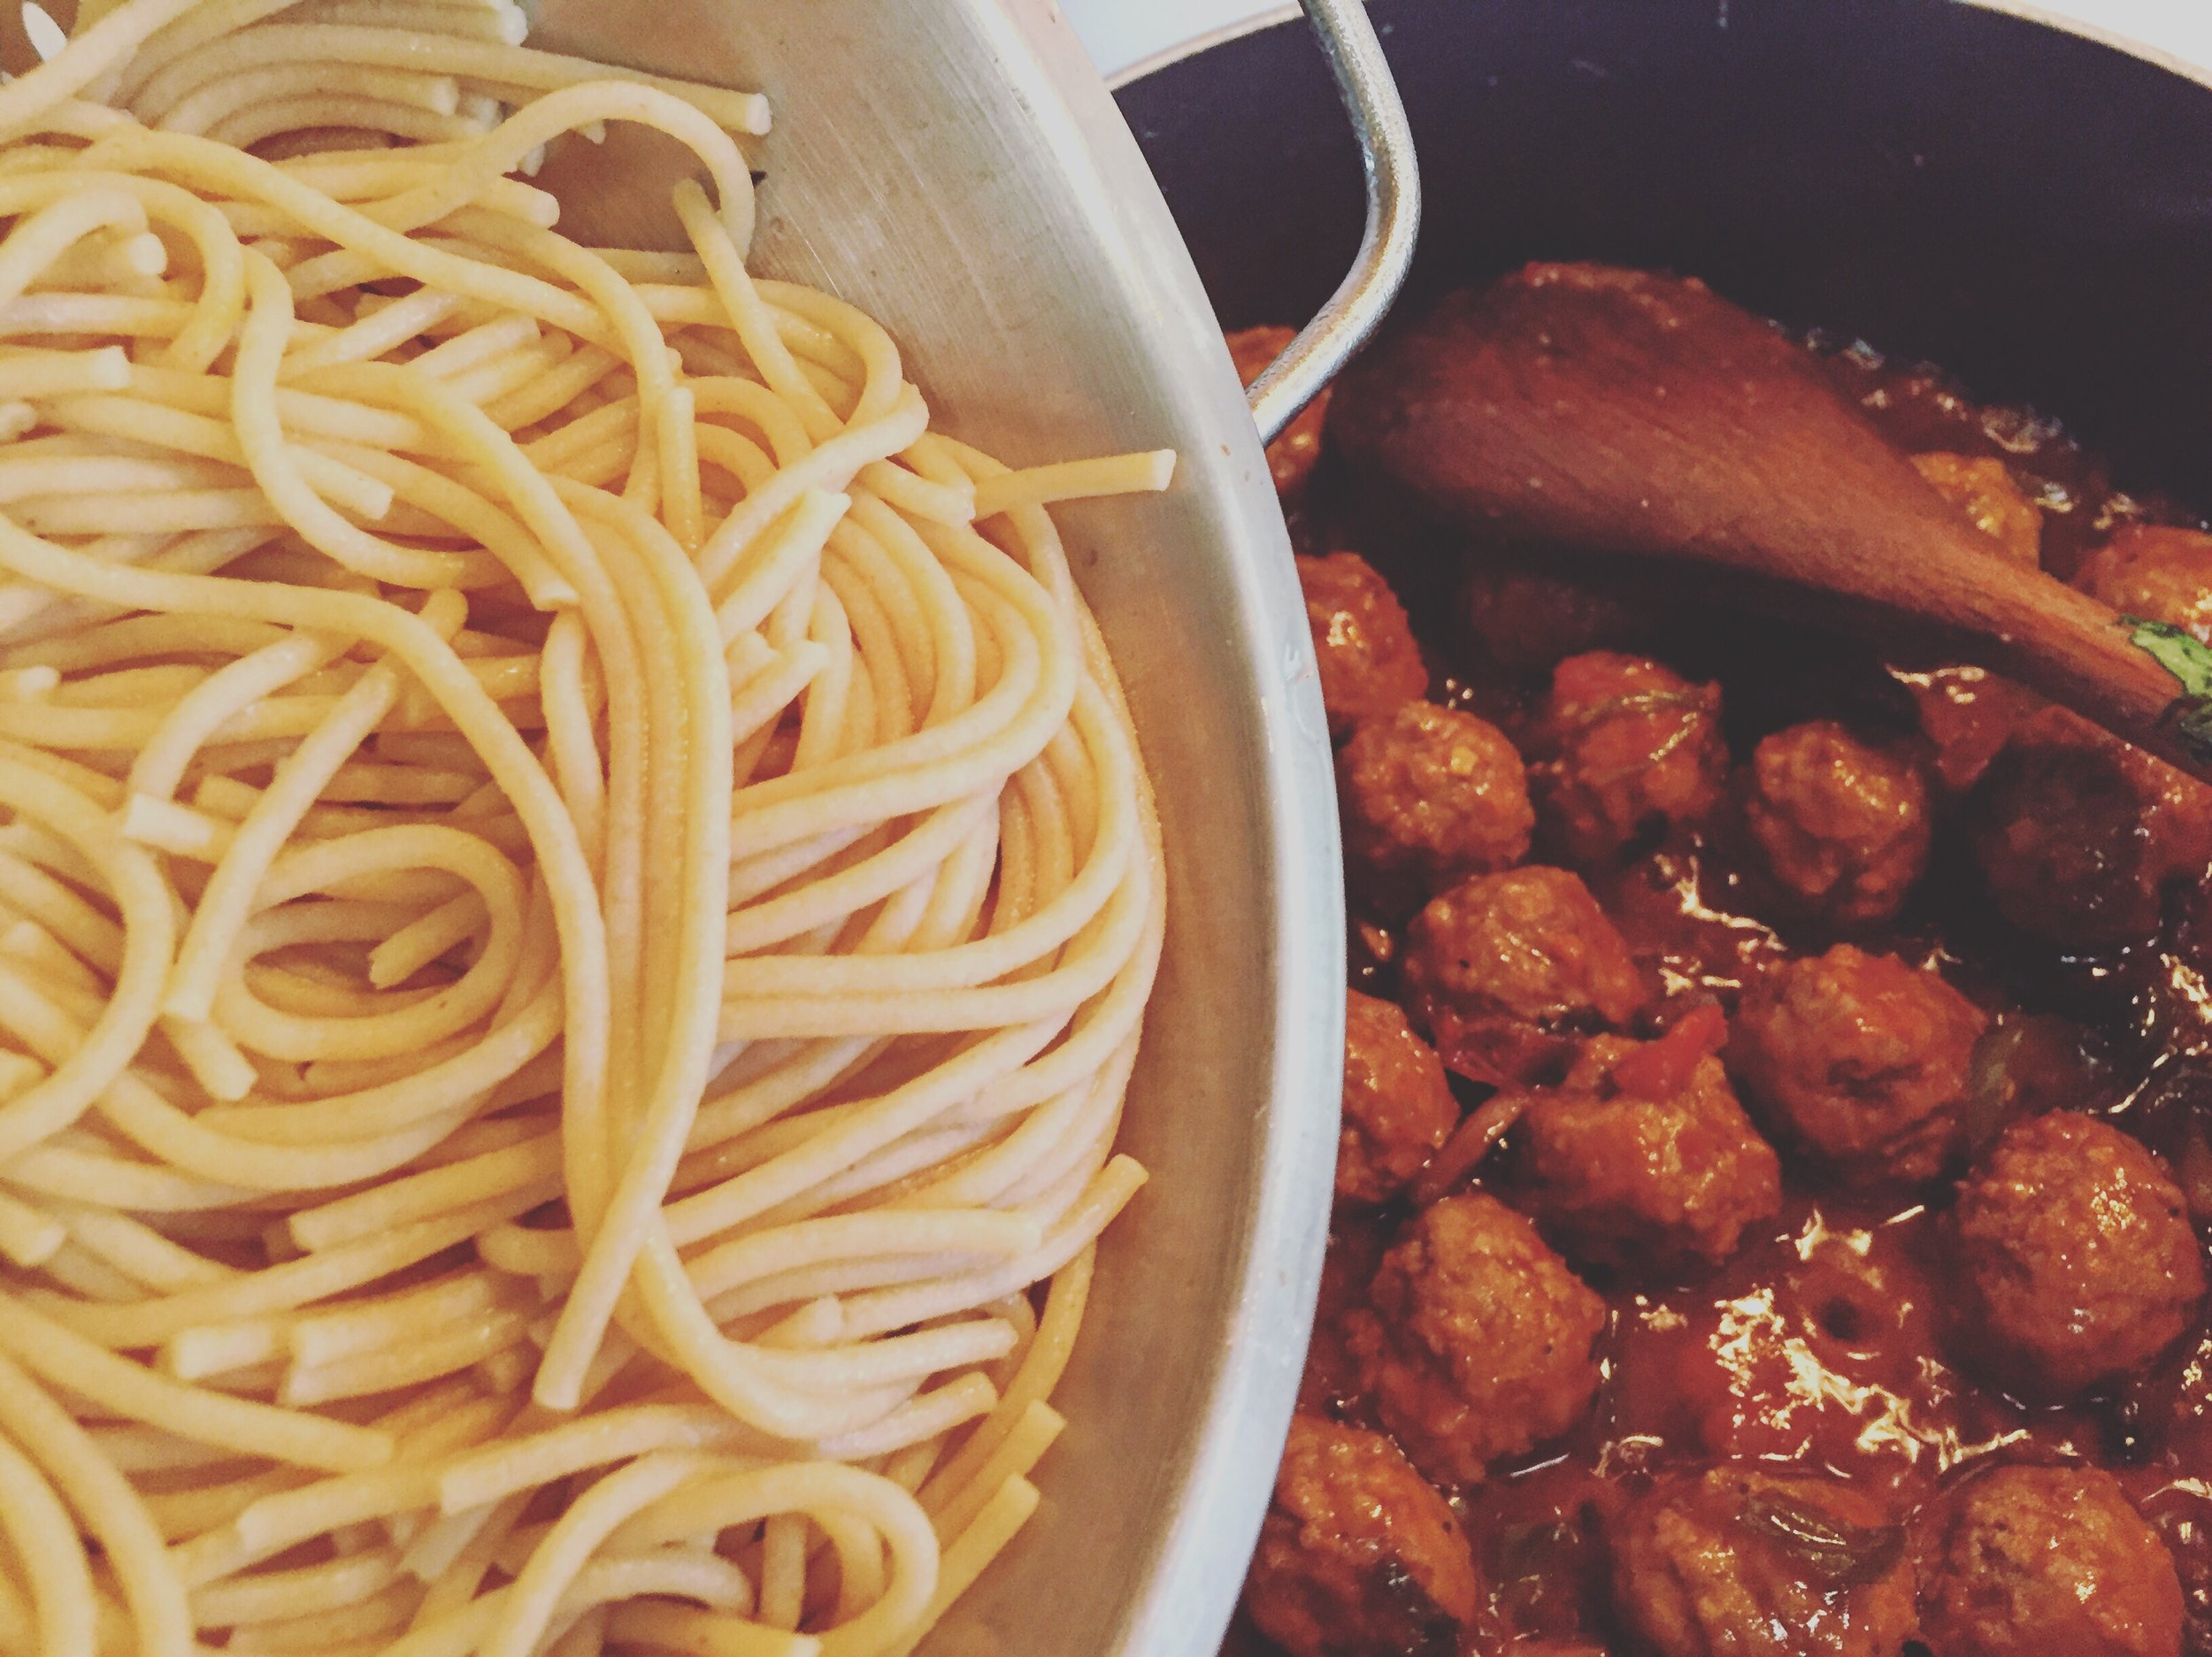 Dump the spaghetti into the mix. Don't be afraid. It's pretty cool, you know.